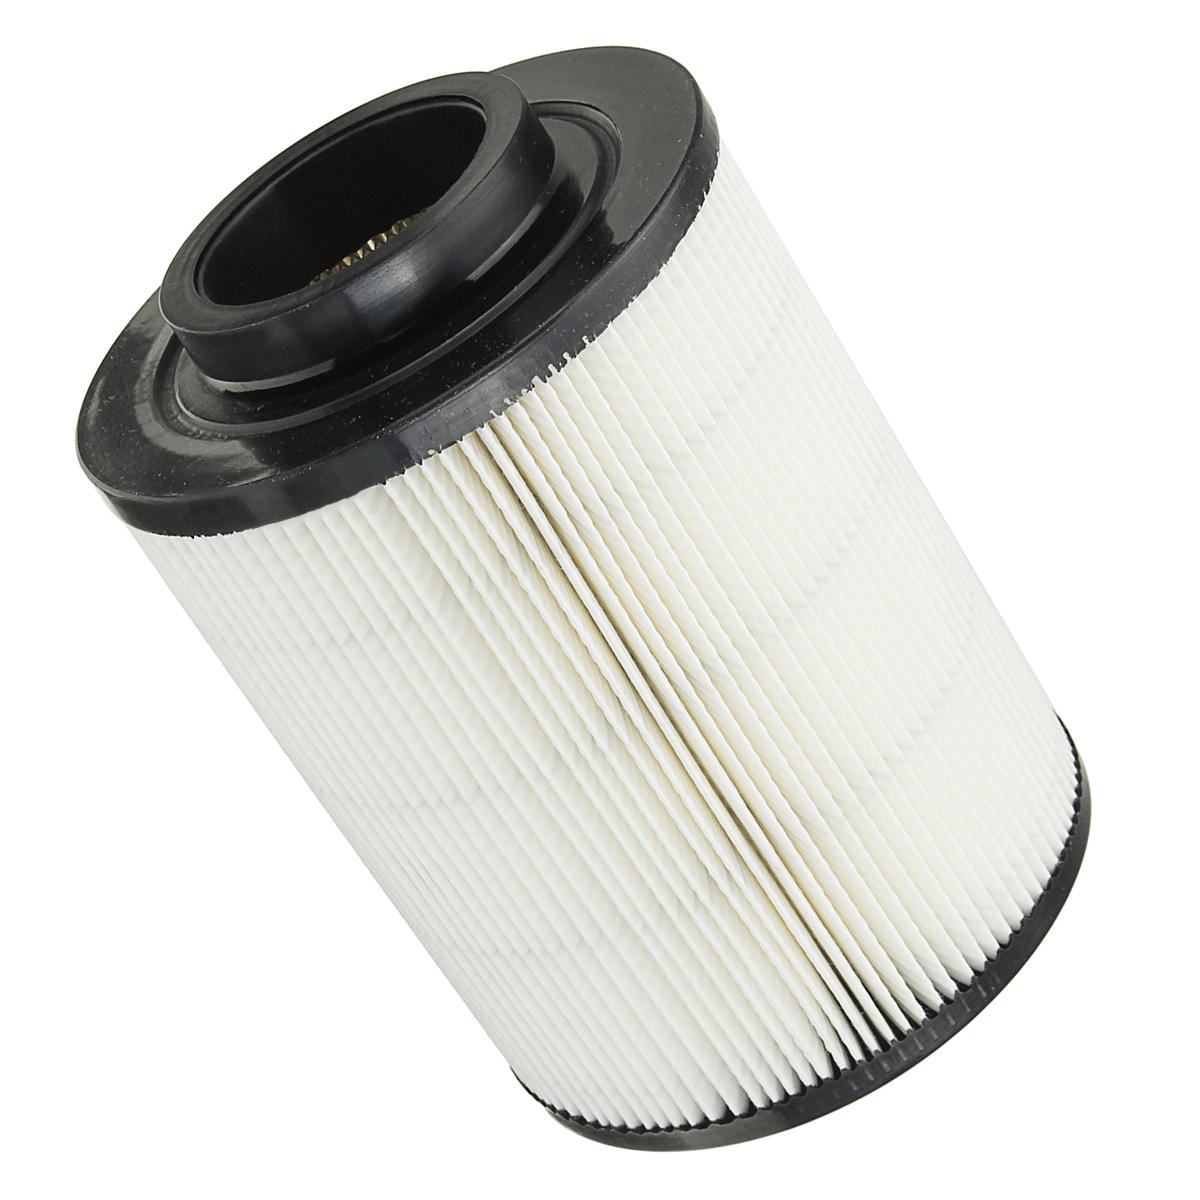 Air Filter Clearner 1240482 Replacement For Polaris RZR 800 2008-2014 UTV